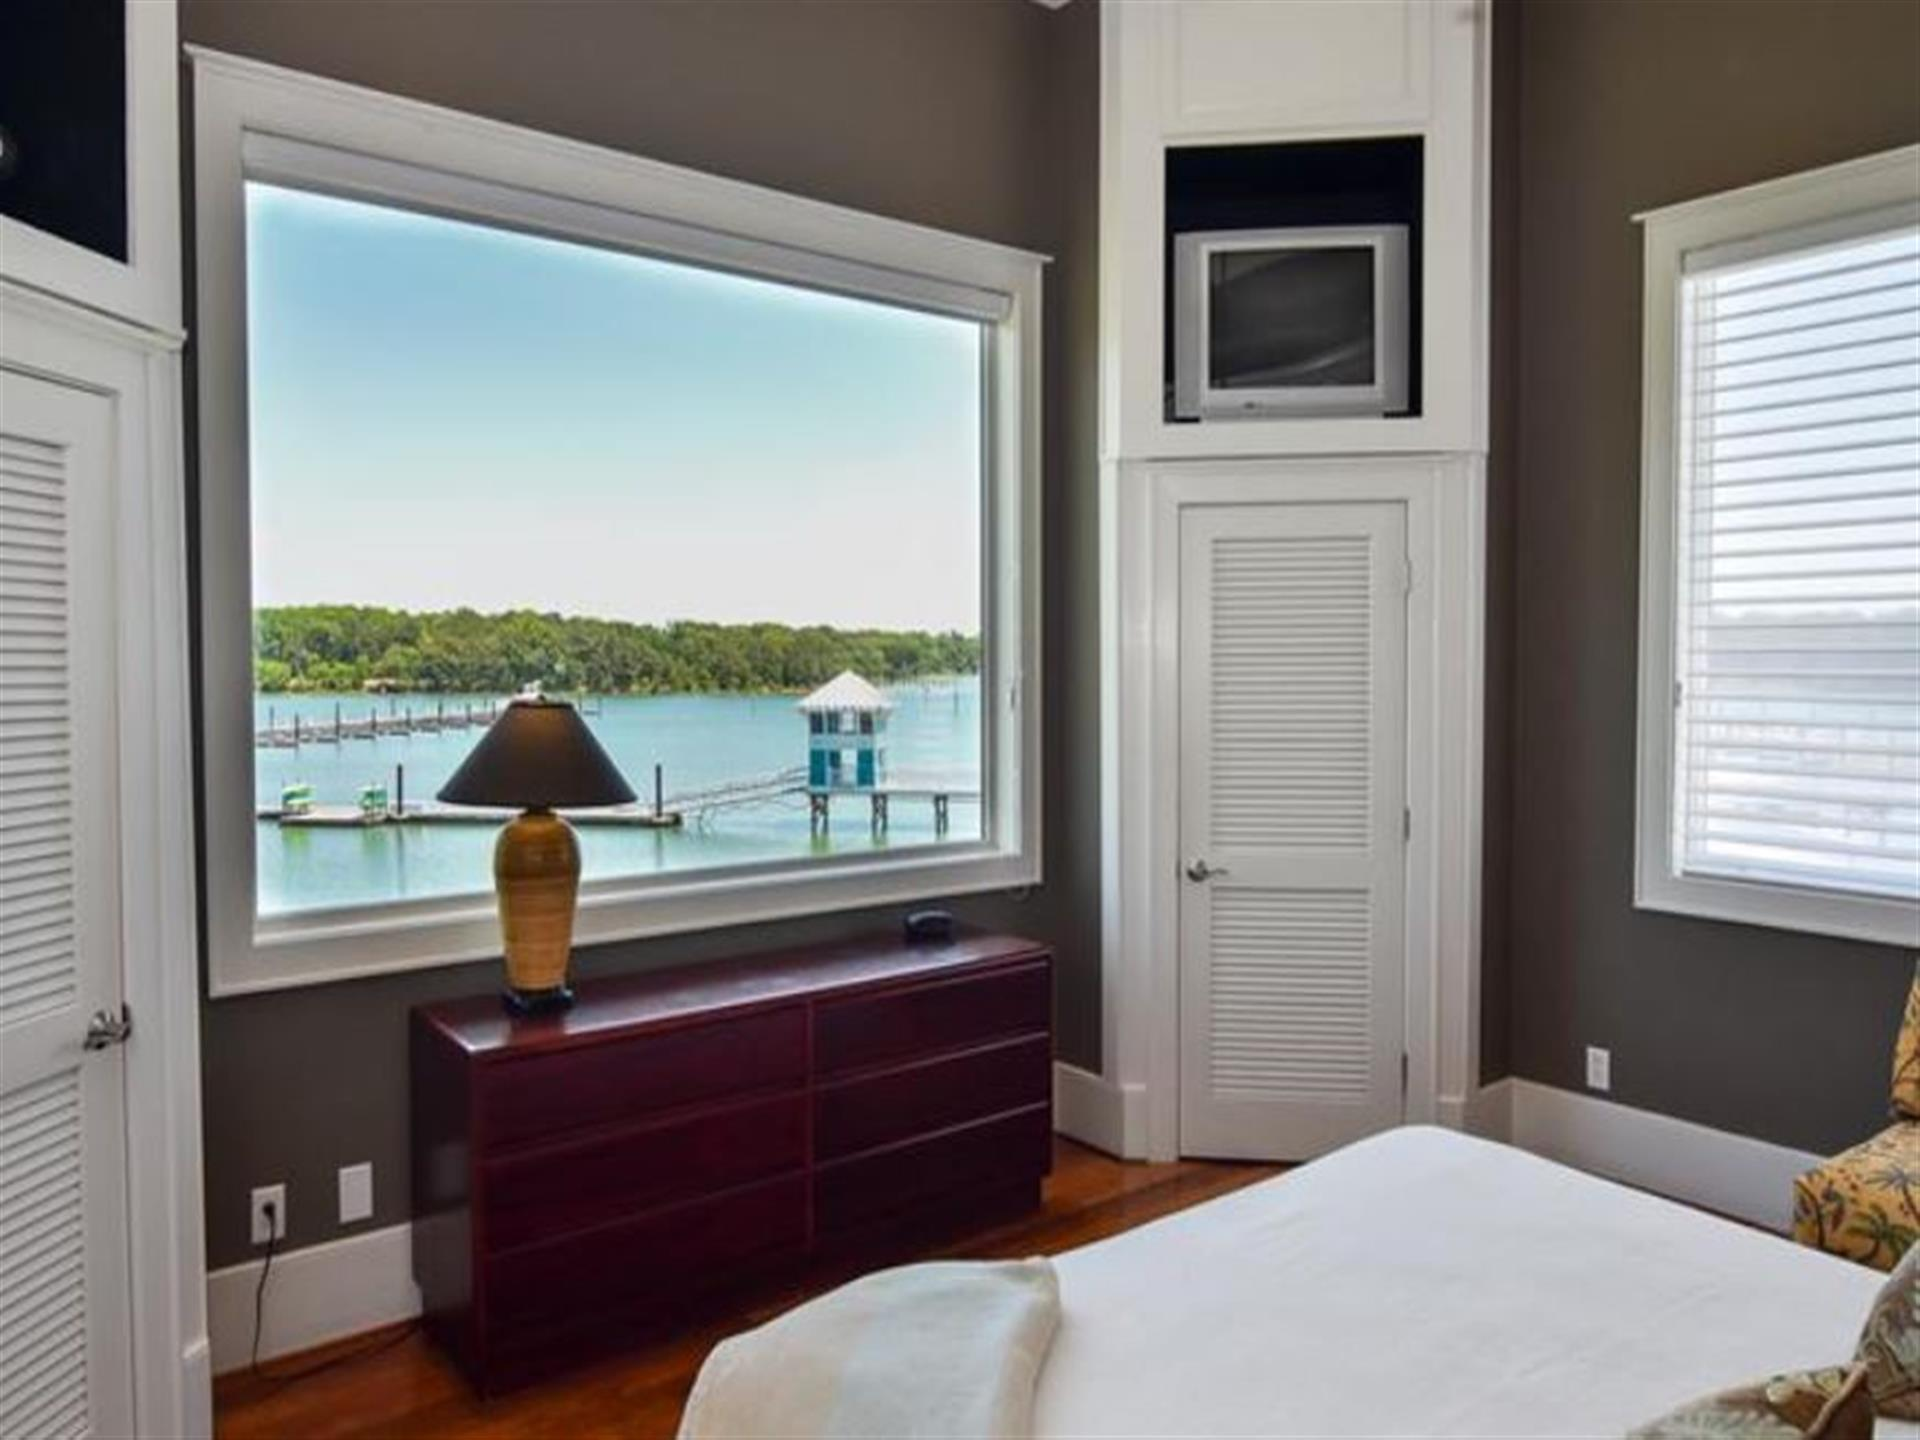 view of the bay from the bed of the bedroom